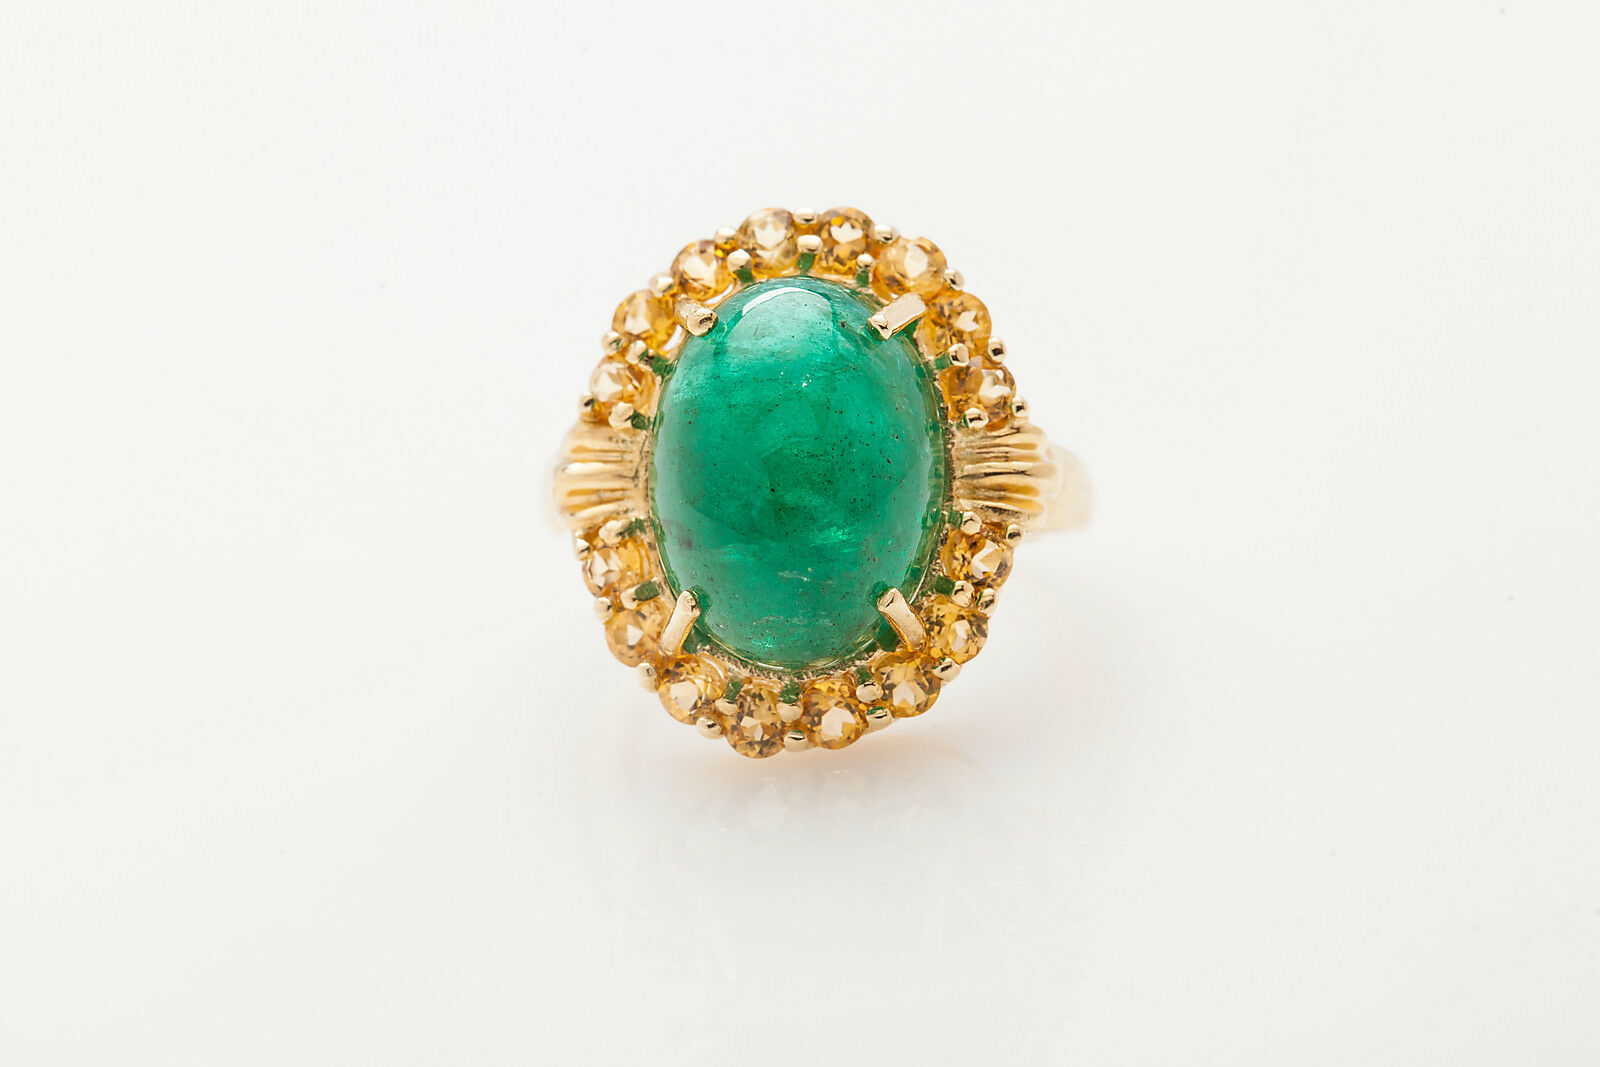 Antique 1940s  12,000 15ct Colombian Emerald Citrine 14k Yellow gold Ring